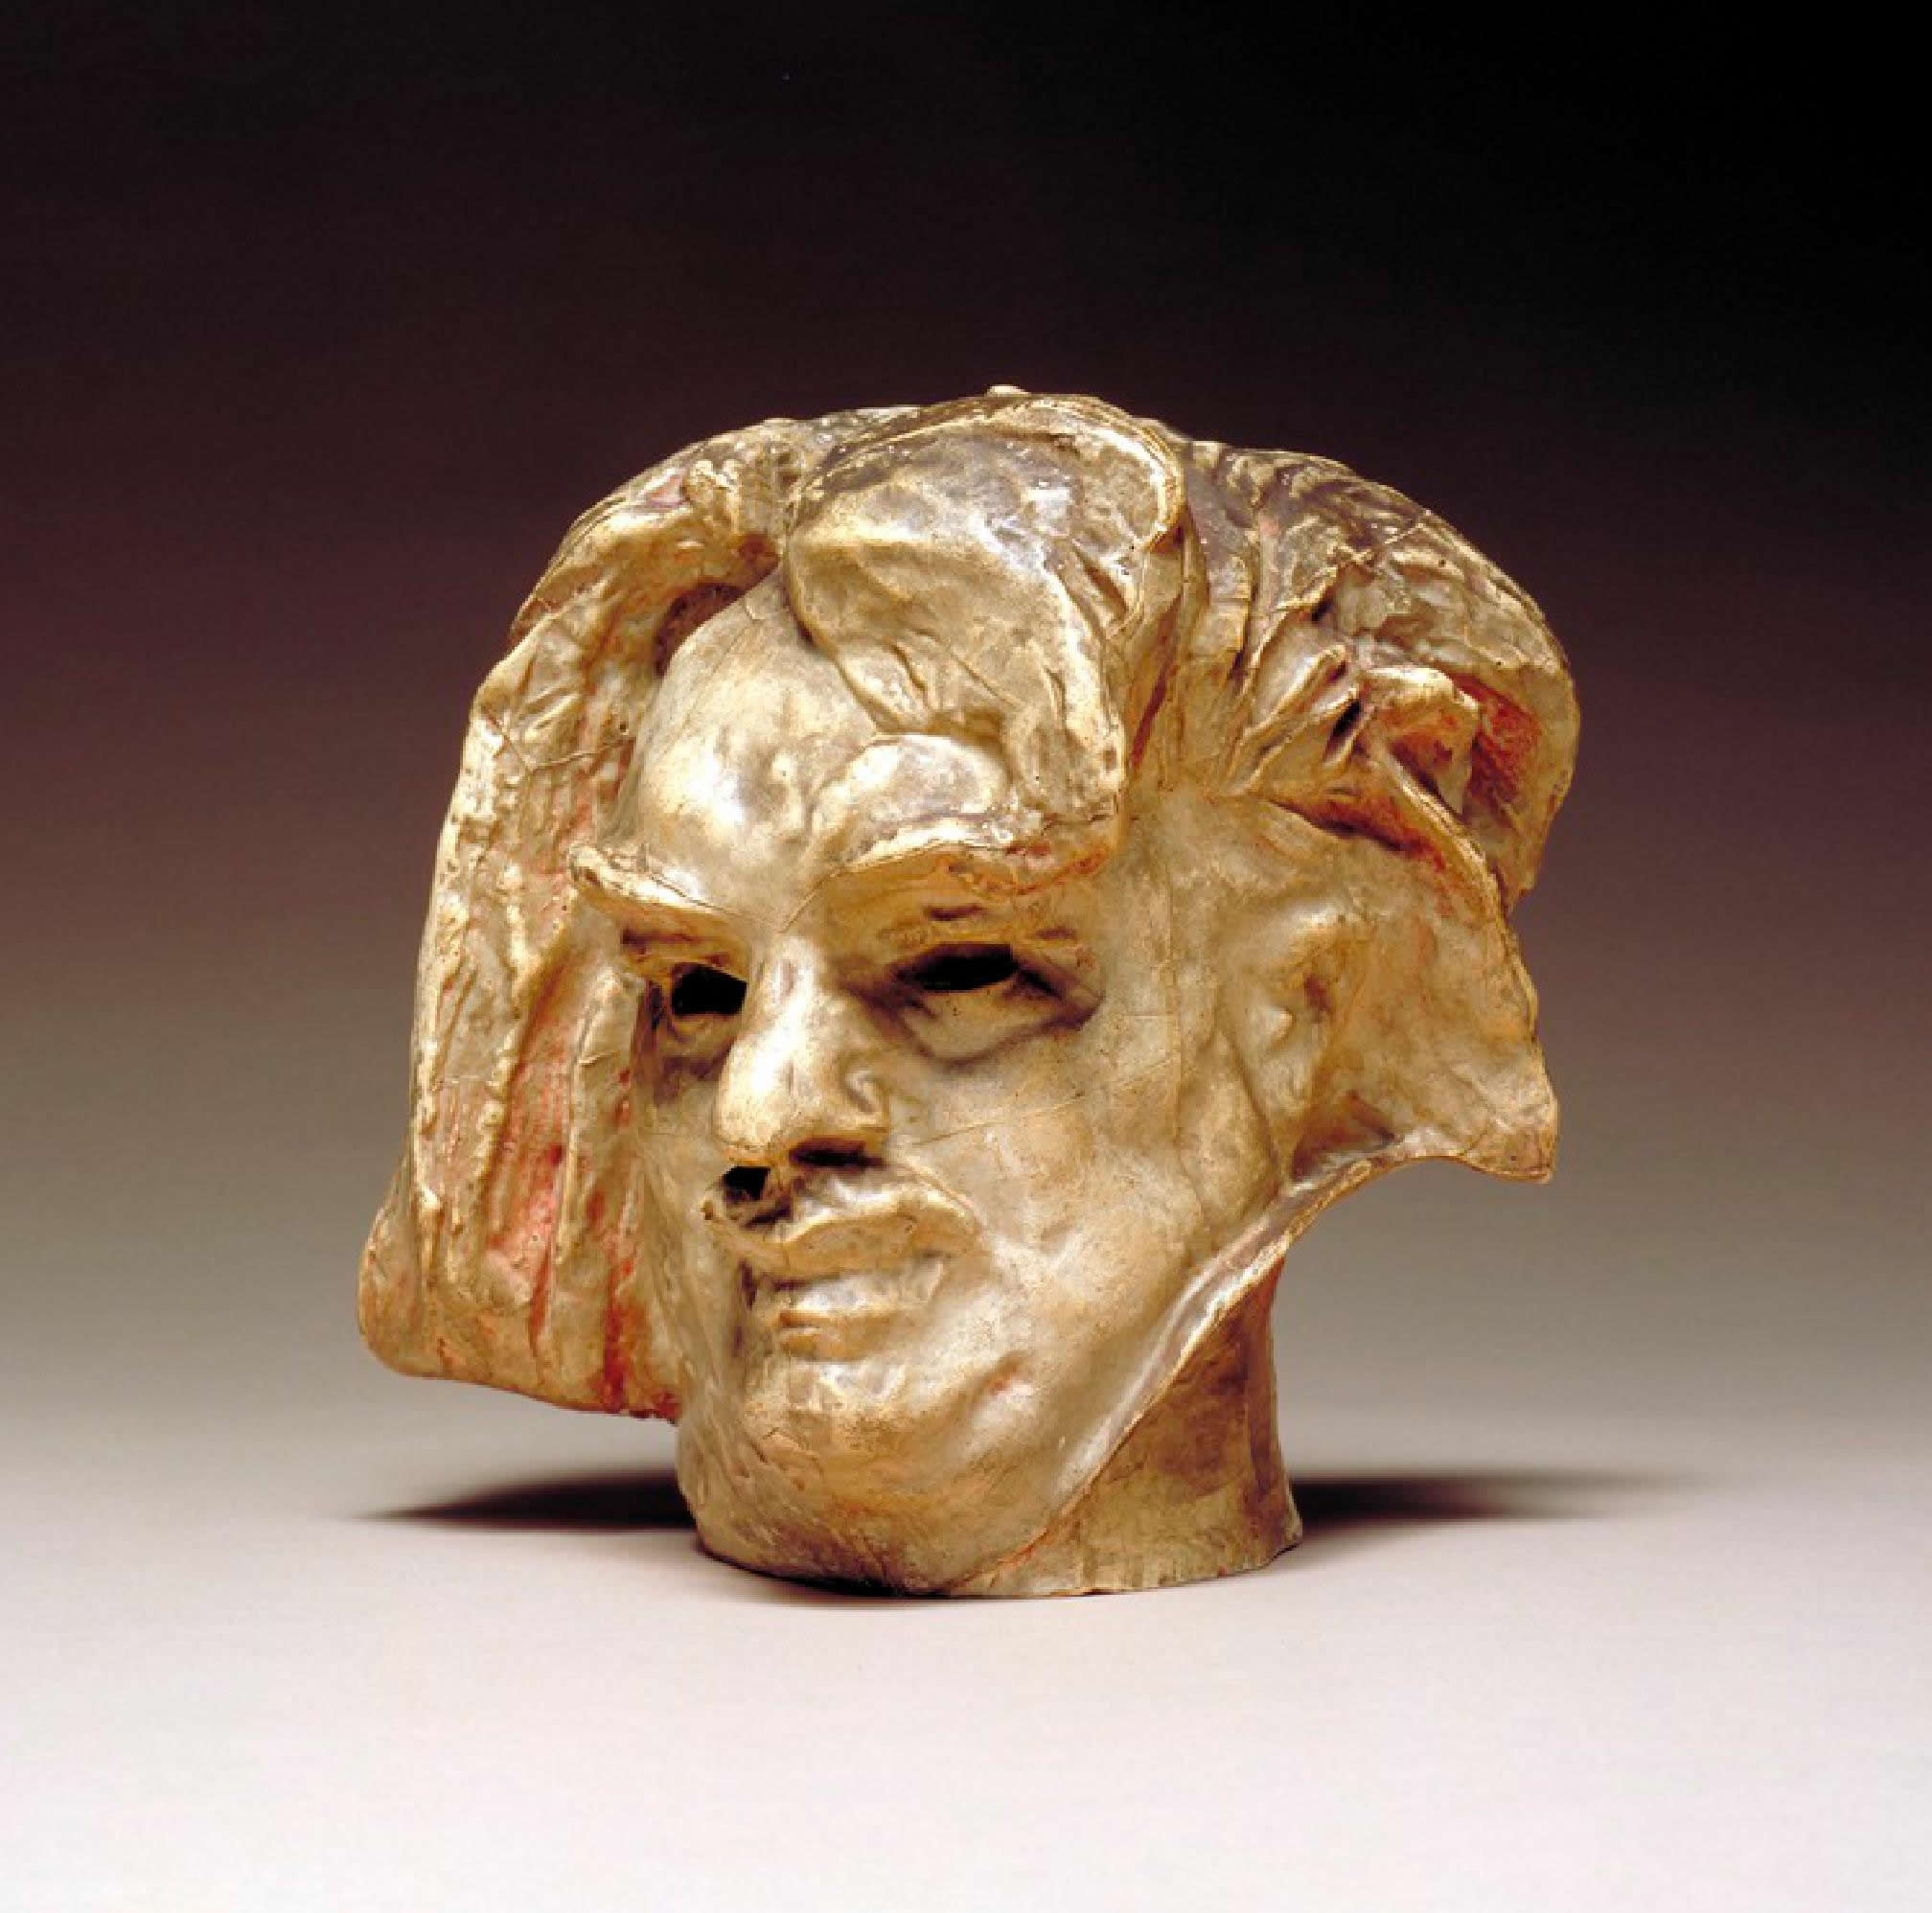 Auguste Rodin's Head of Balzac sculpture. Photo via Nasher Sculpture Center.